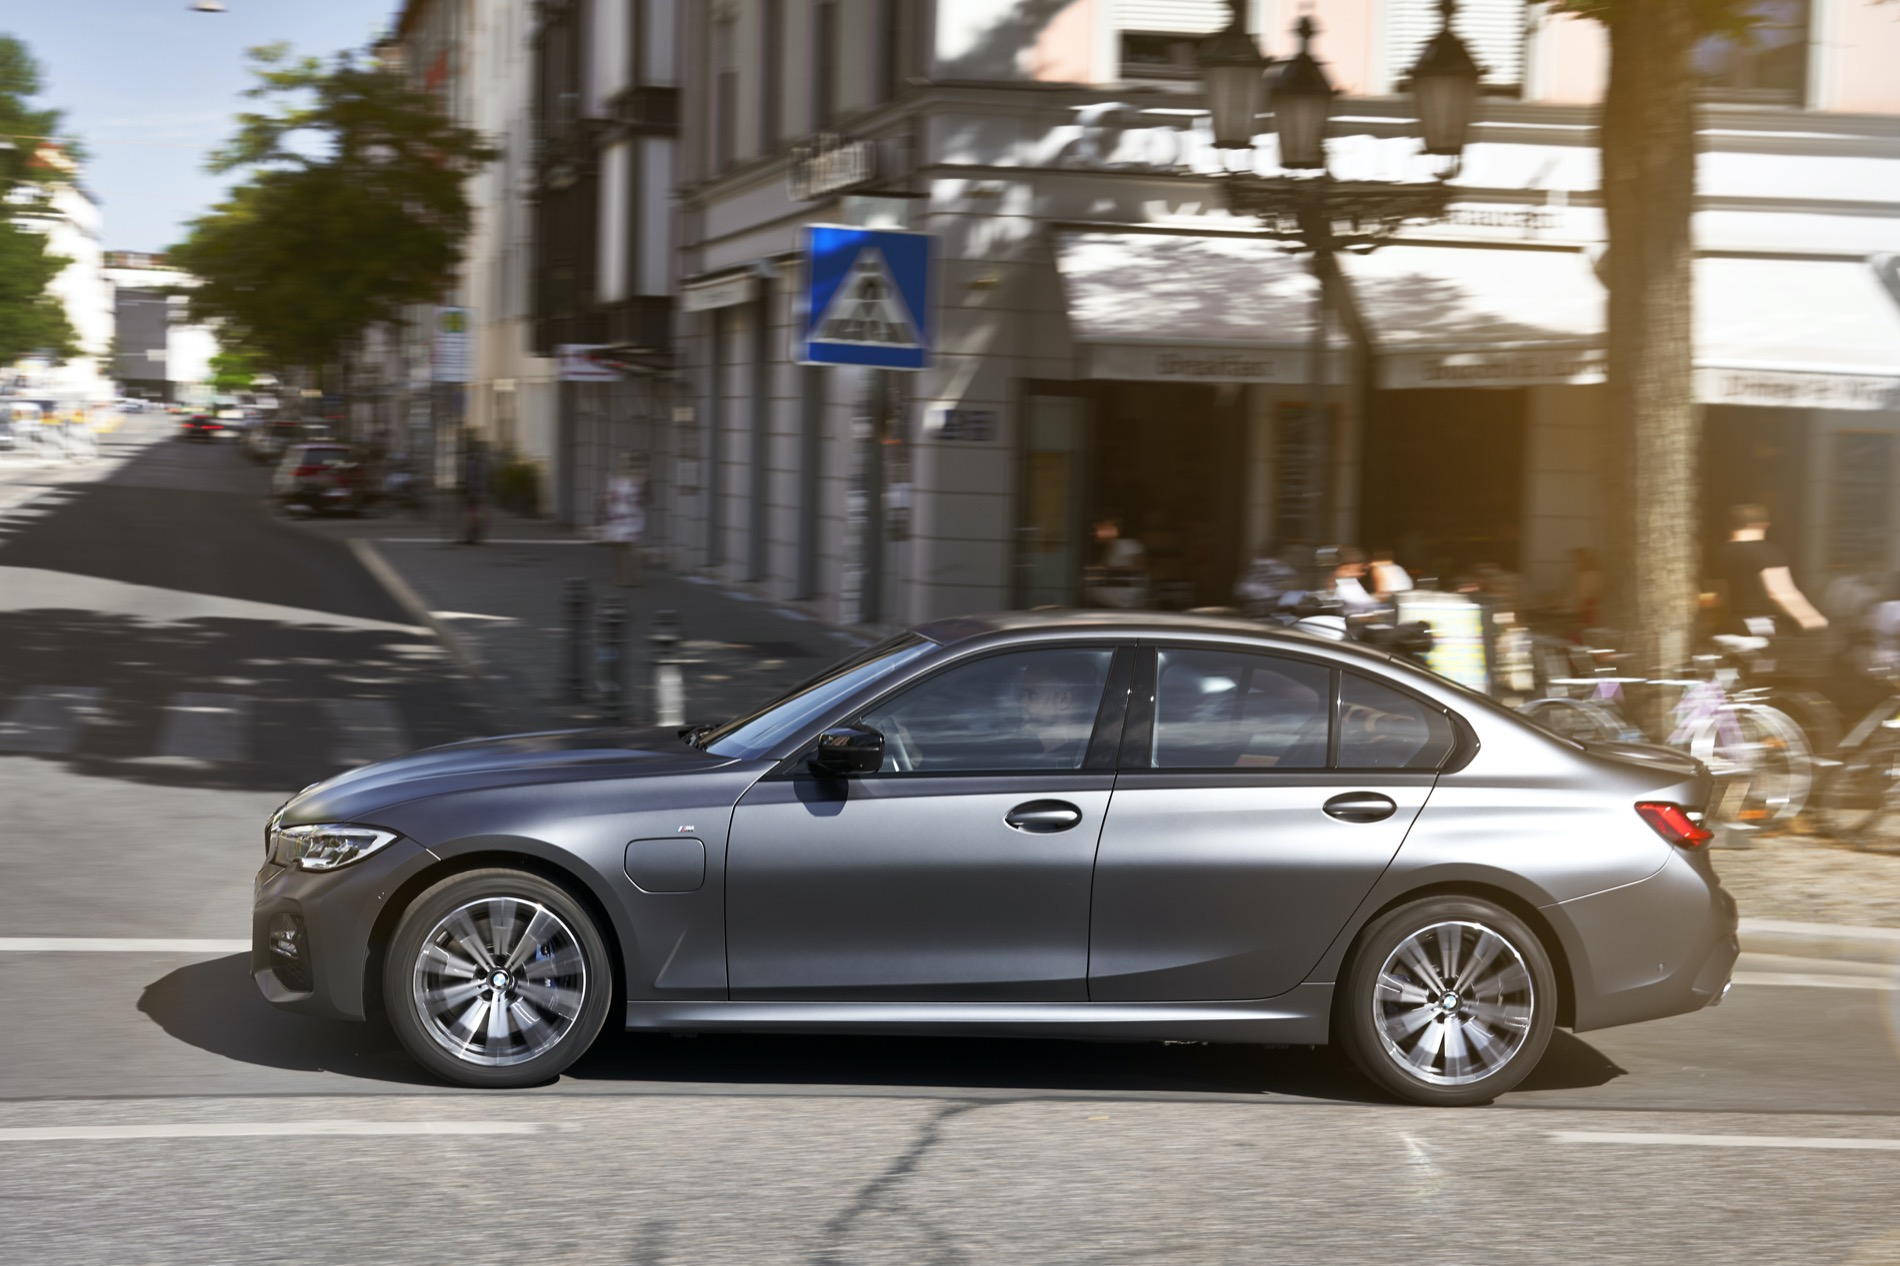 BMW_3_Series_Plug-in_Hybrid-009